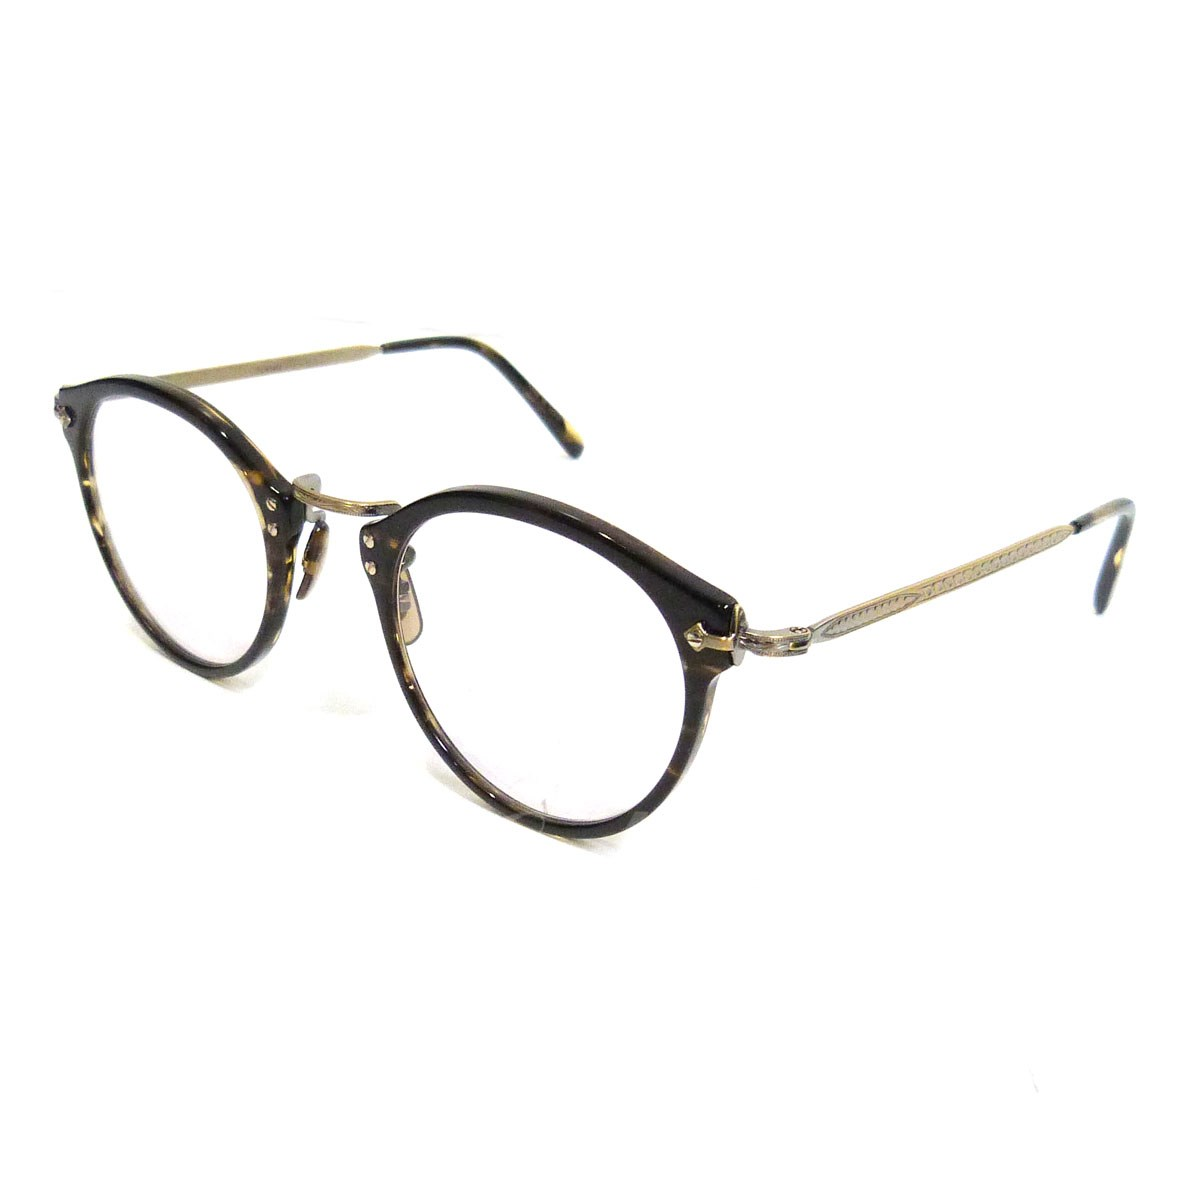 【中古】OLIVER PEOPLES 「505 SUN COCO/2 AG LTD 雅」 眼鏡 【送料無料】 【055330】 【KIND1551】